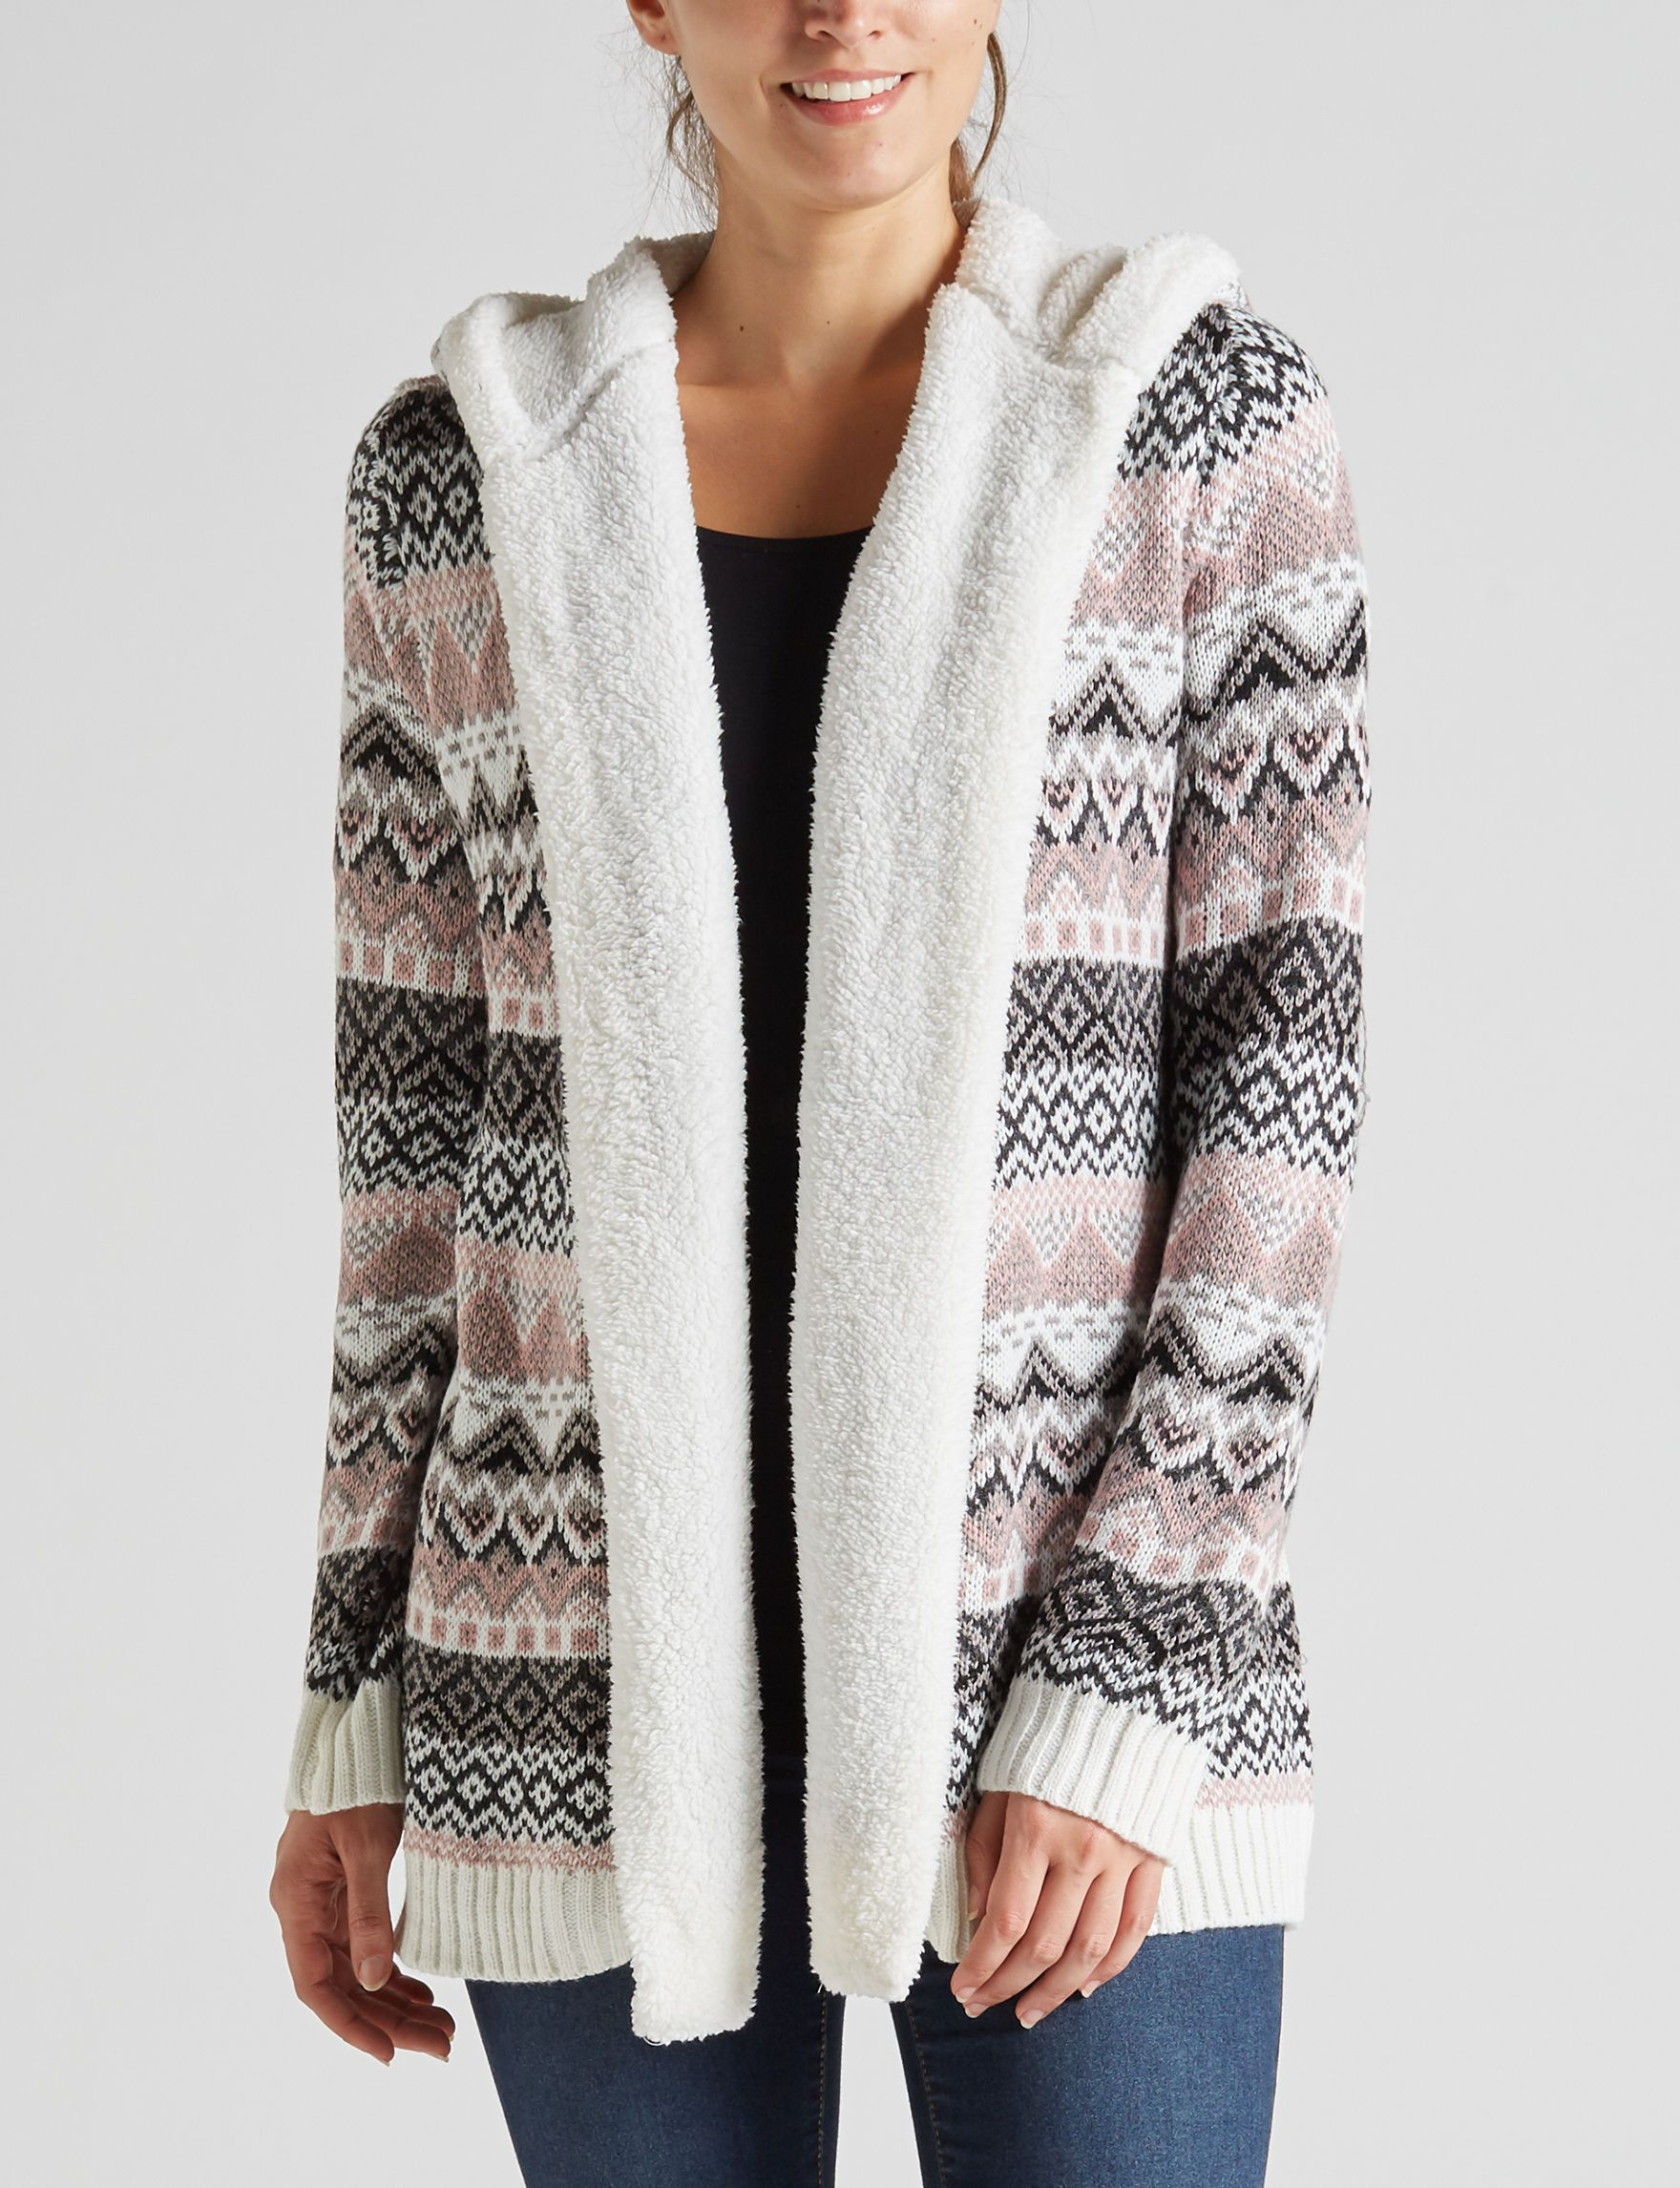 f3990da1a2 Almost Famous Fair Isle Sherpa Lined Cardigan Sweater